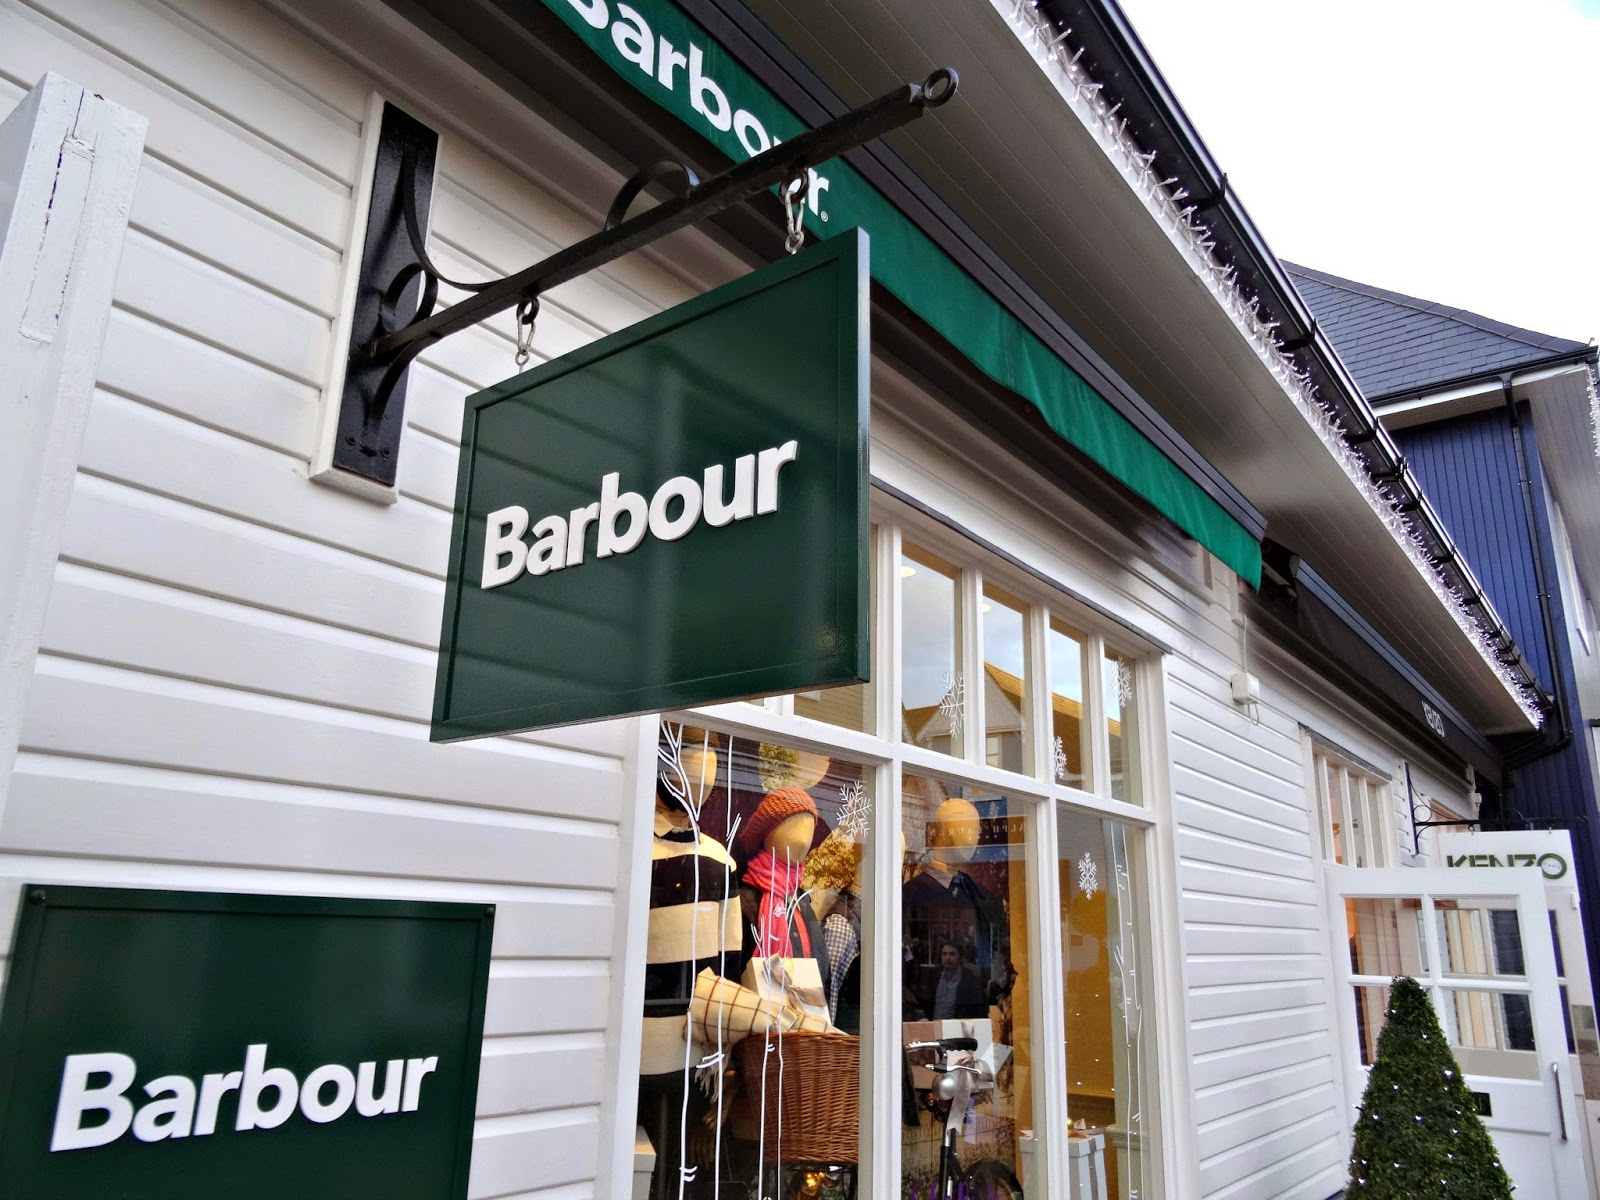 Barbour Shop at Bicester Village